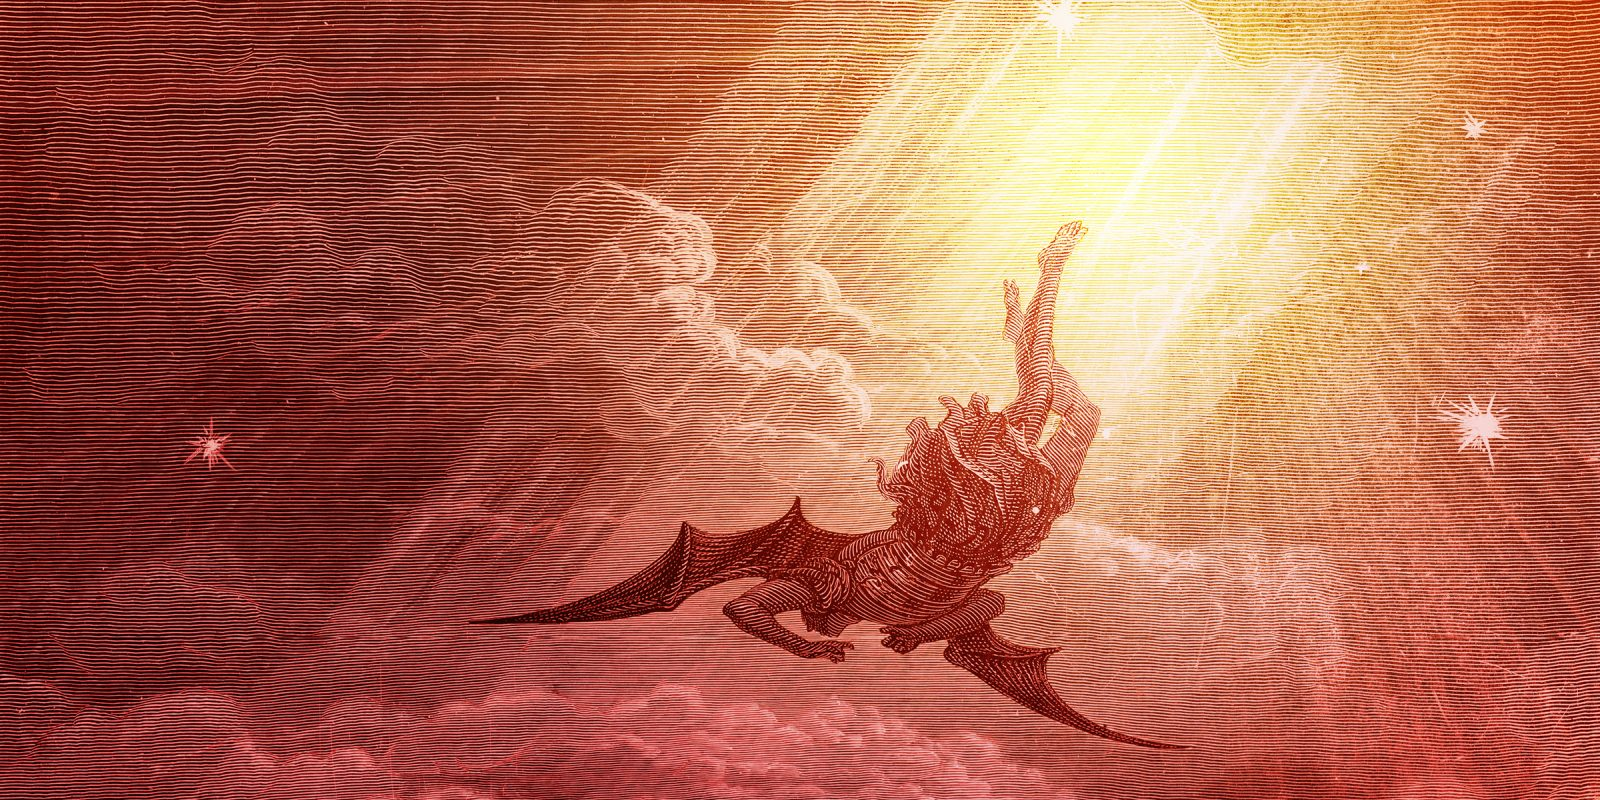 Satan falling with clouds and beams of light